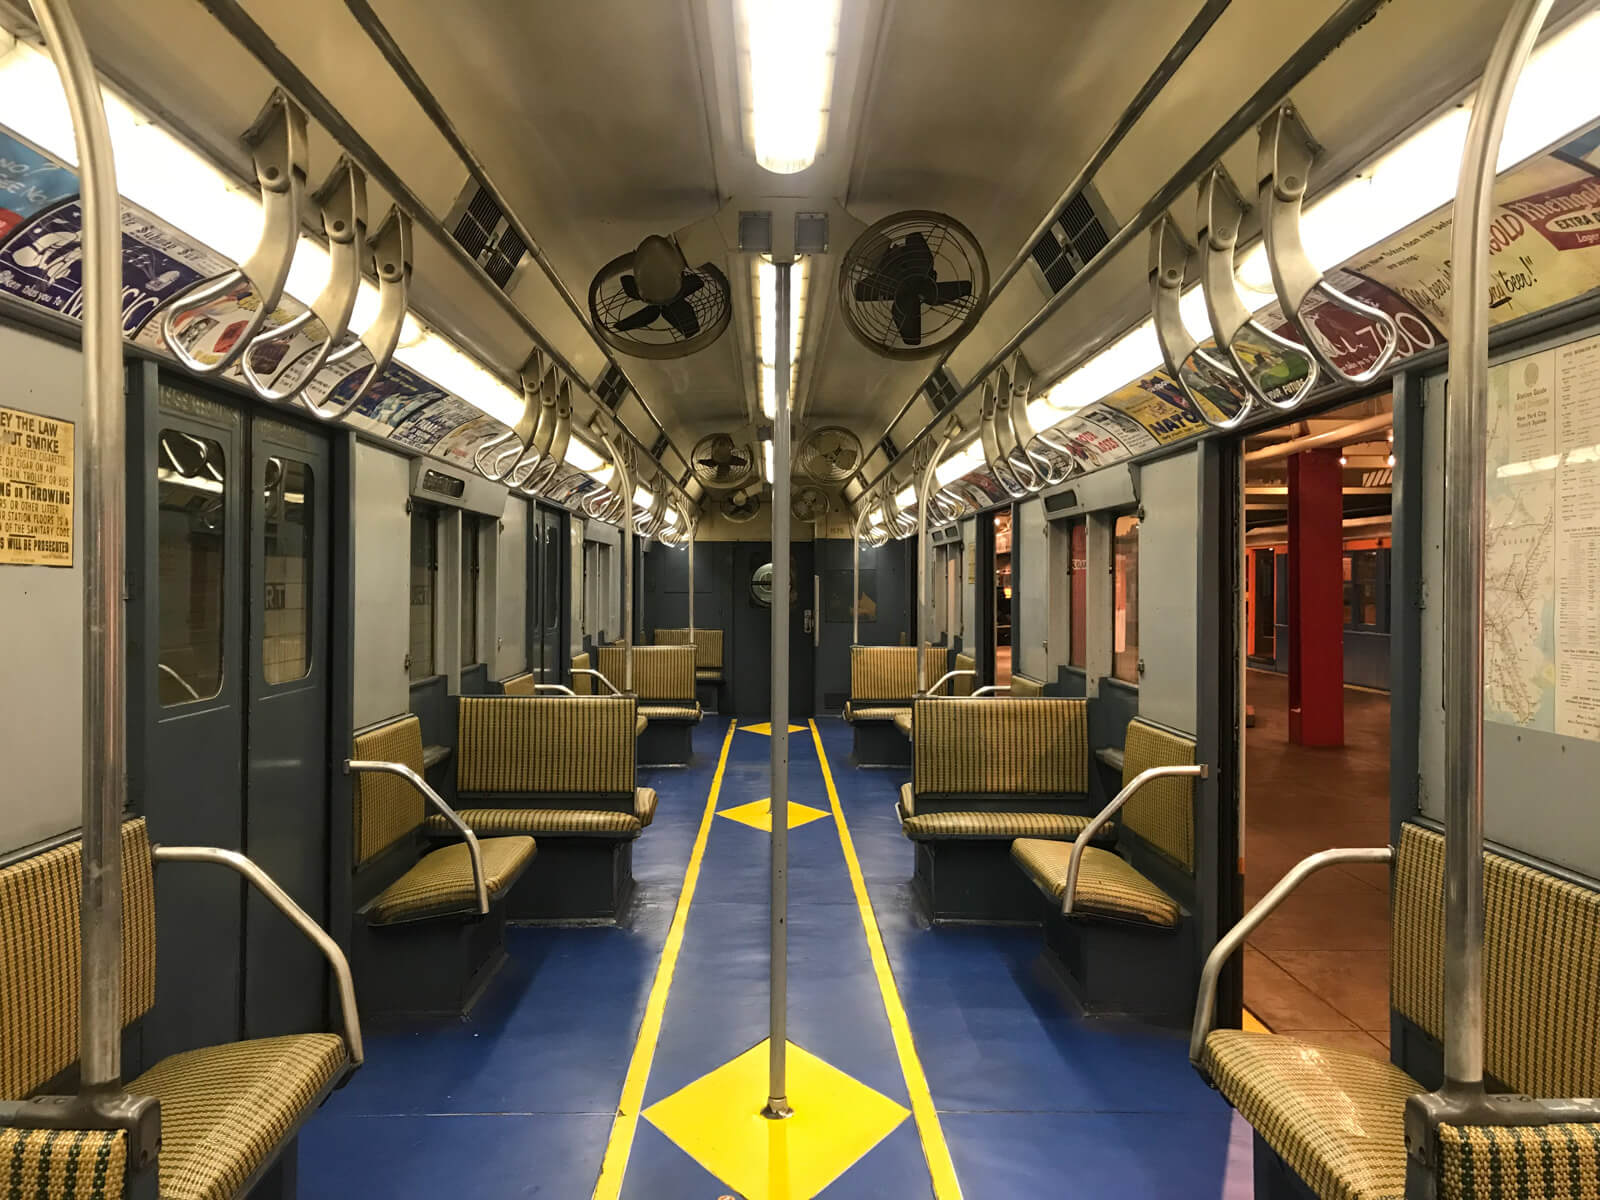 The inside of a different train carriage with a blue and yellow floor